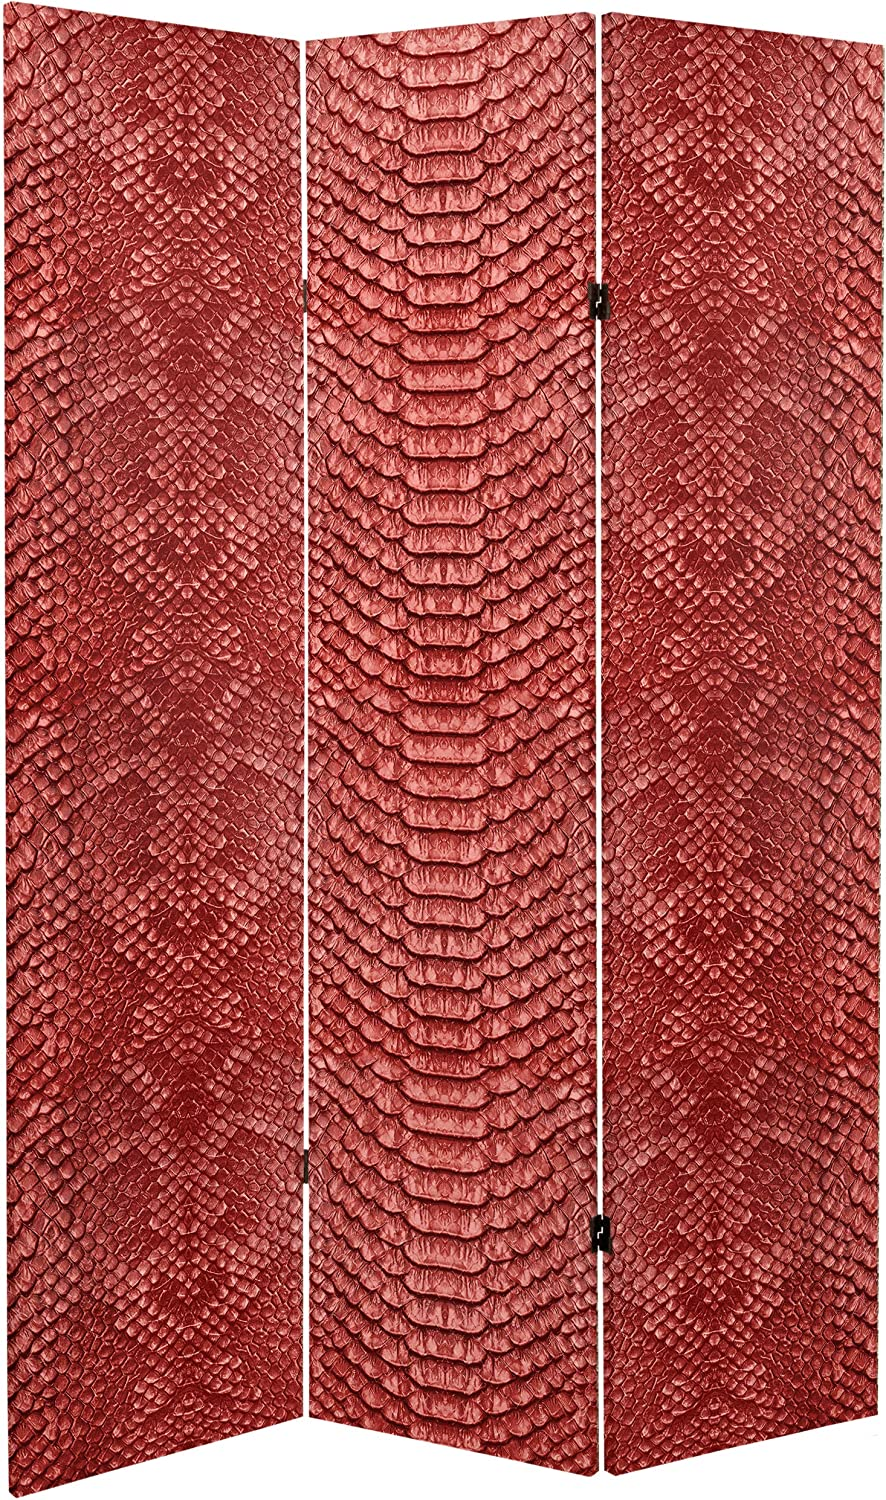 ORIENTAL Furniture 6 ft. Tall Double Sided Red Snake Print Canvas Room Divider